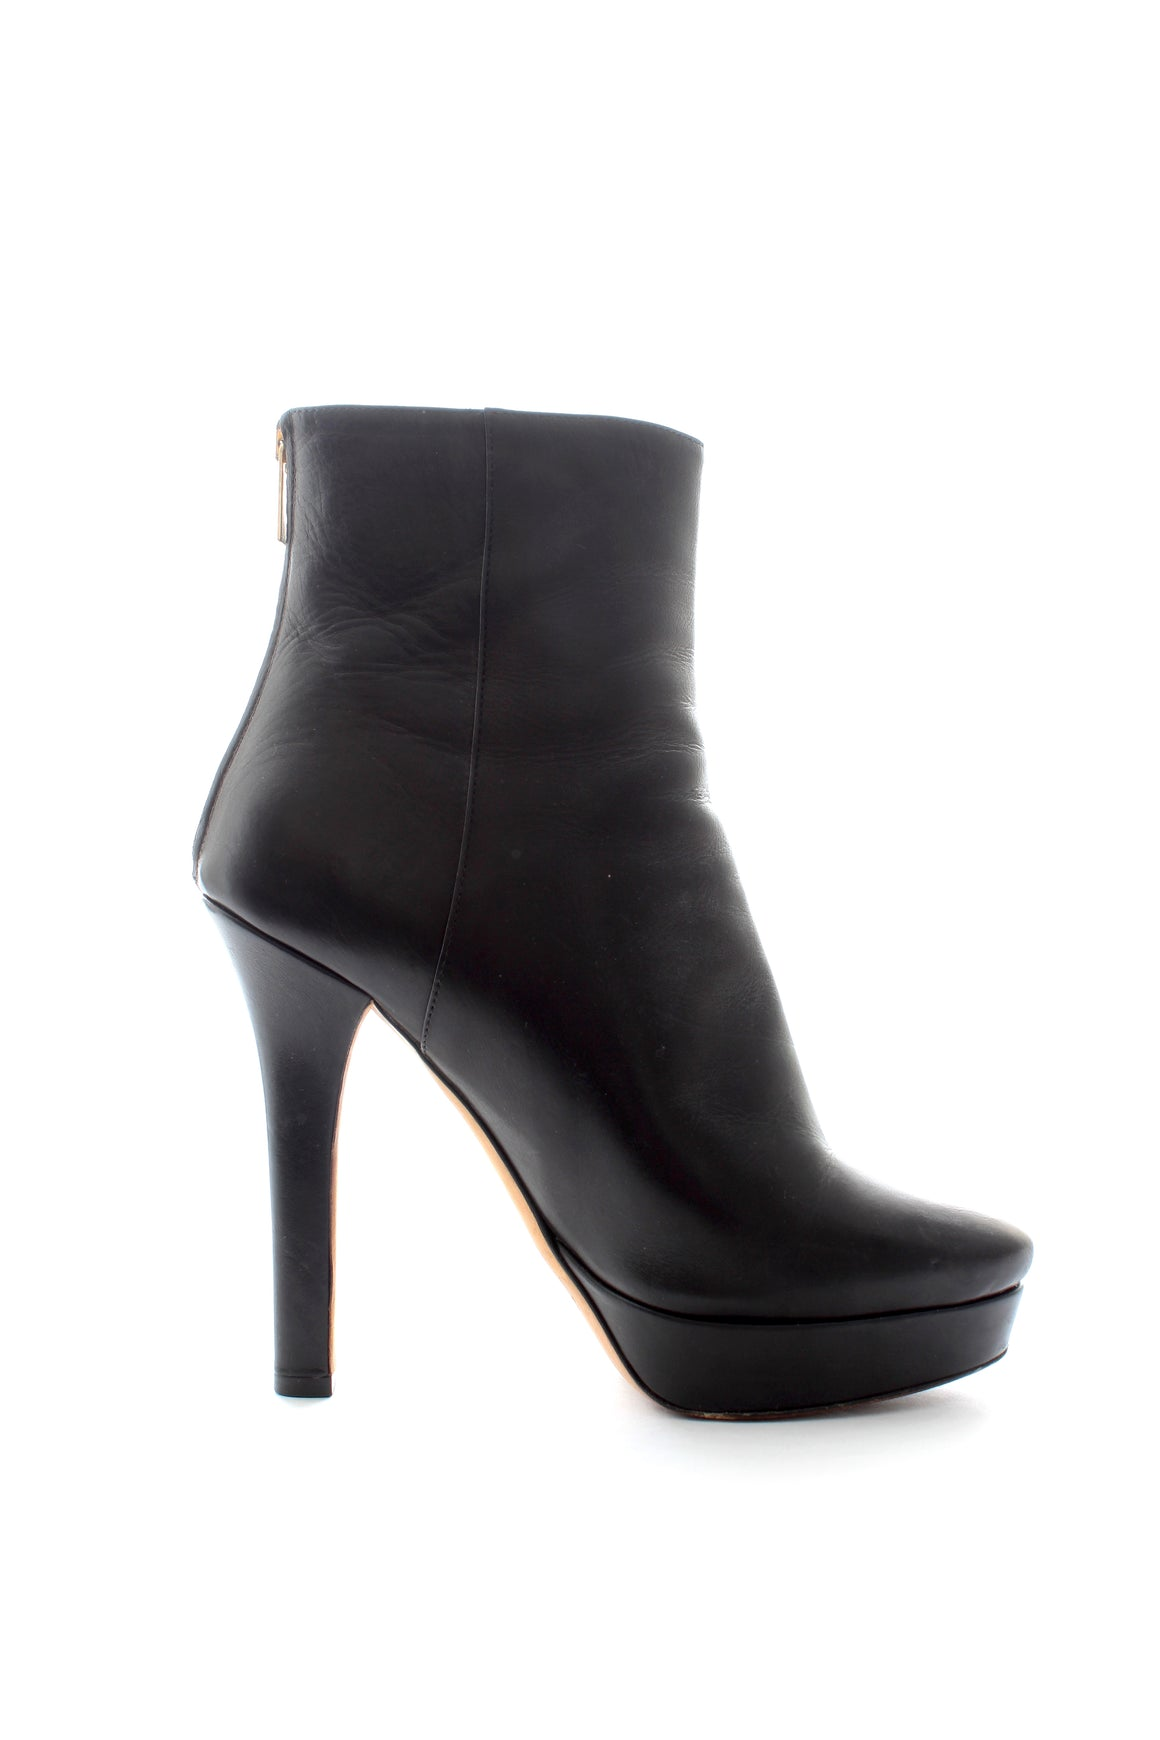 Jimmy Choo 'Magic' Platform Leather Ankle Boots